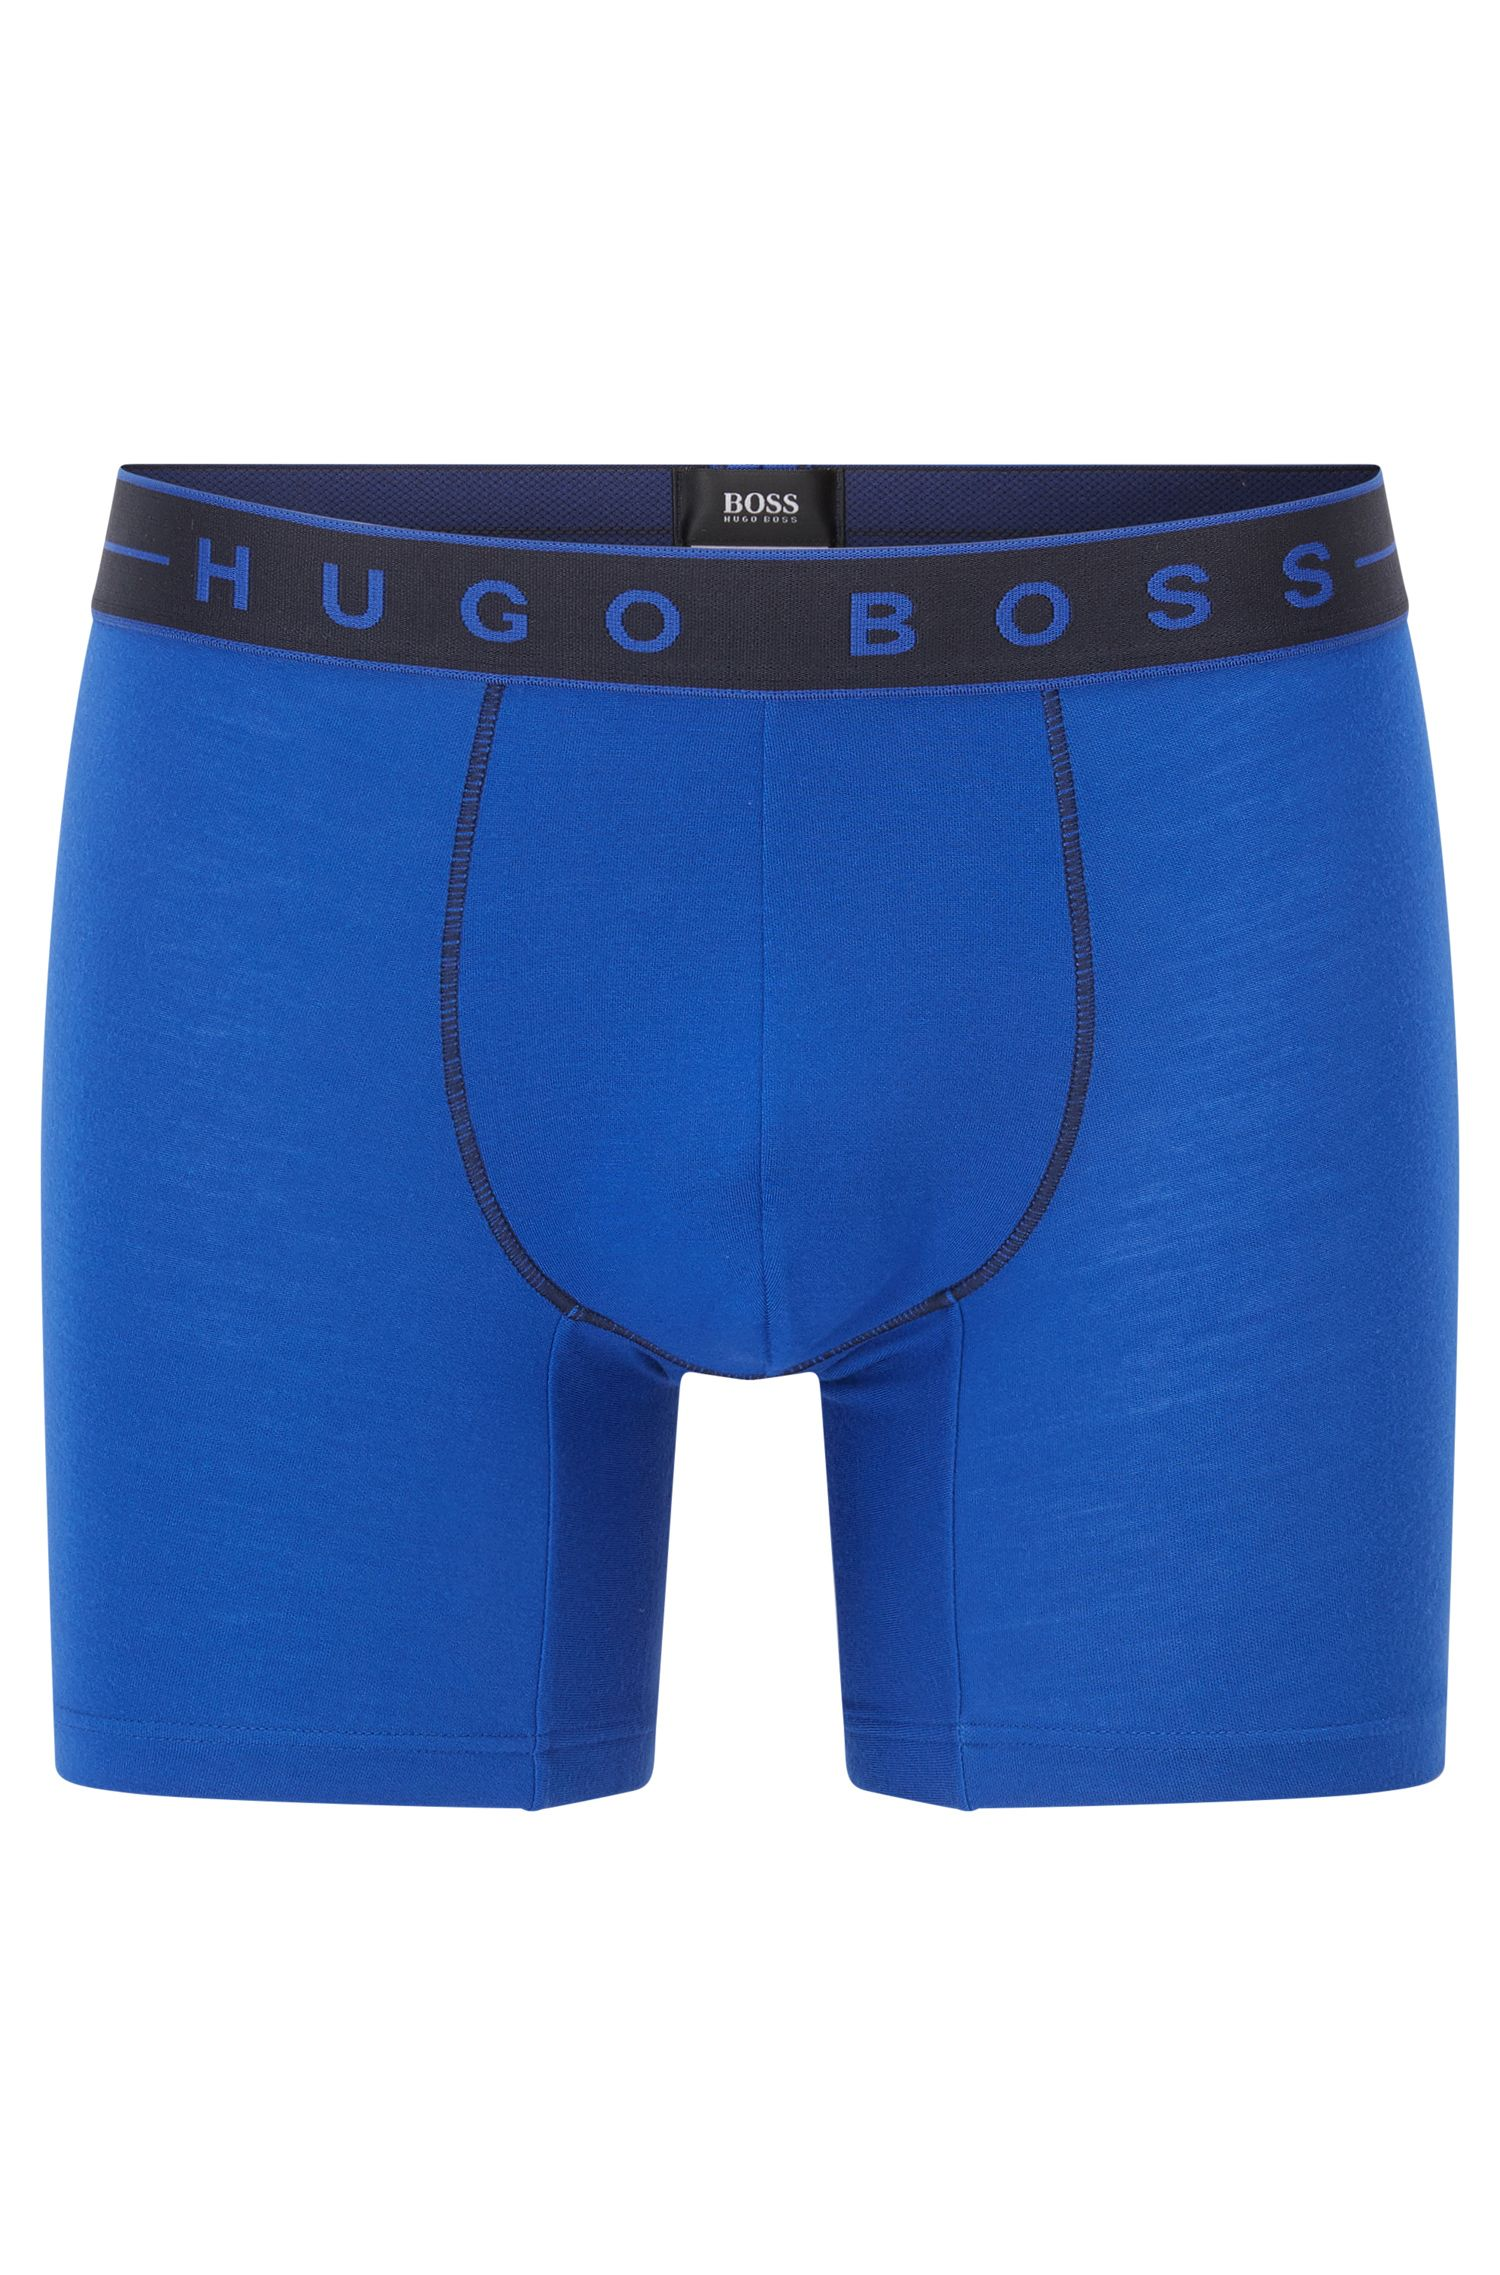 'Boxer Brief 2 Tone' | Microfiber Boxer Briefs